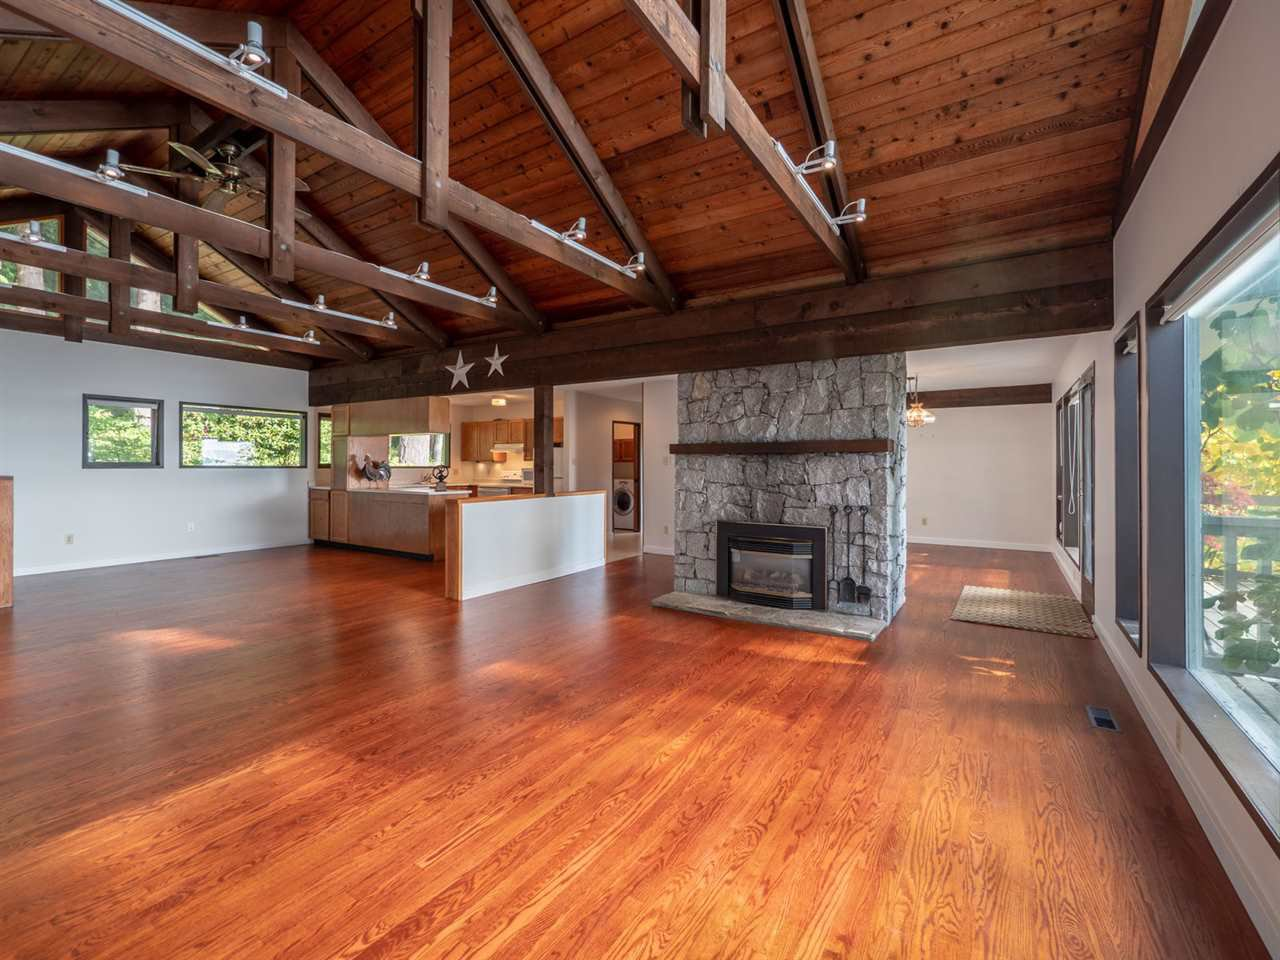 Photo 10: Photos: 877 GOWER POINT Road in Gibsons: Gibsons & Area House for sale (Sunshine Coast)  : MLS®# R2419918